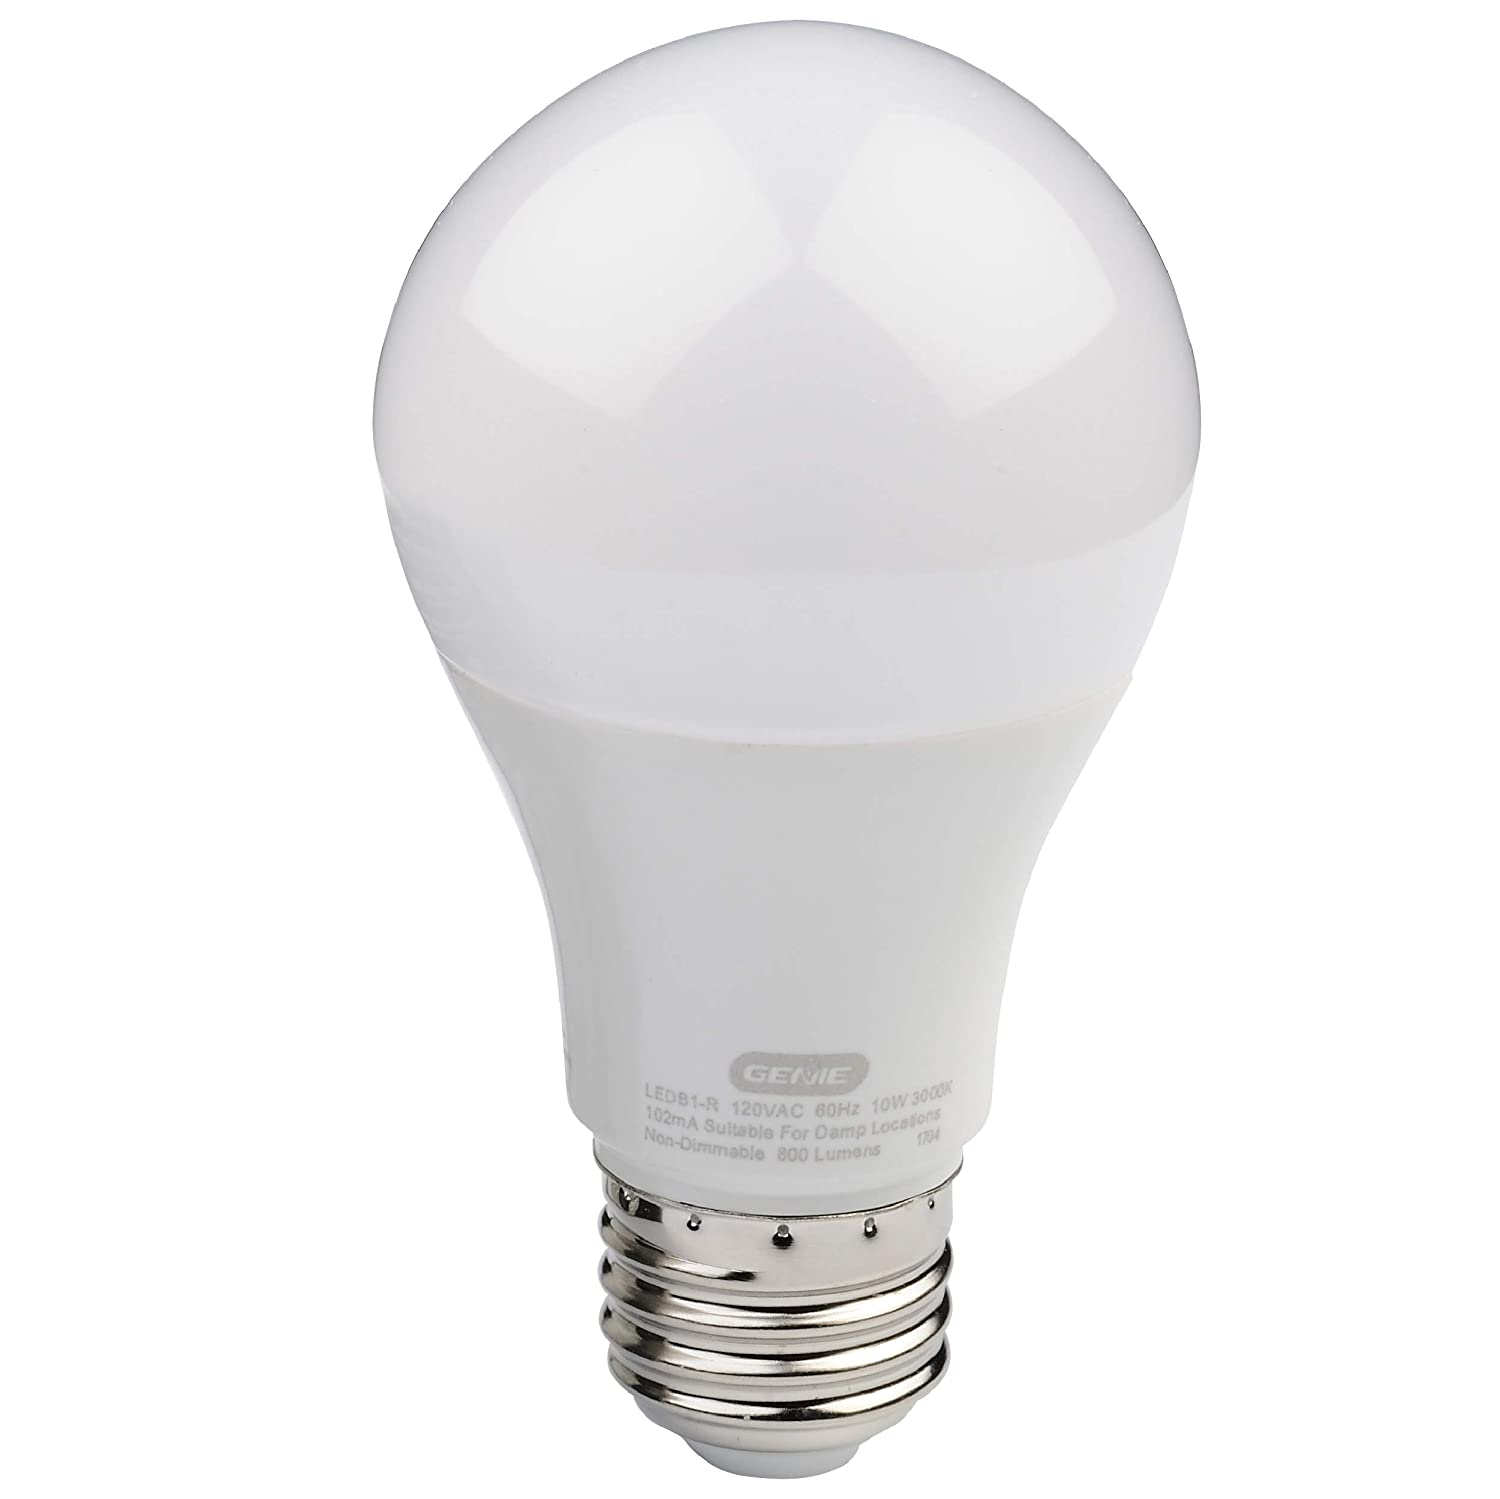 Genie LED Garage Door Opener Light Bulb